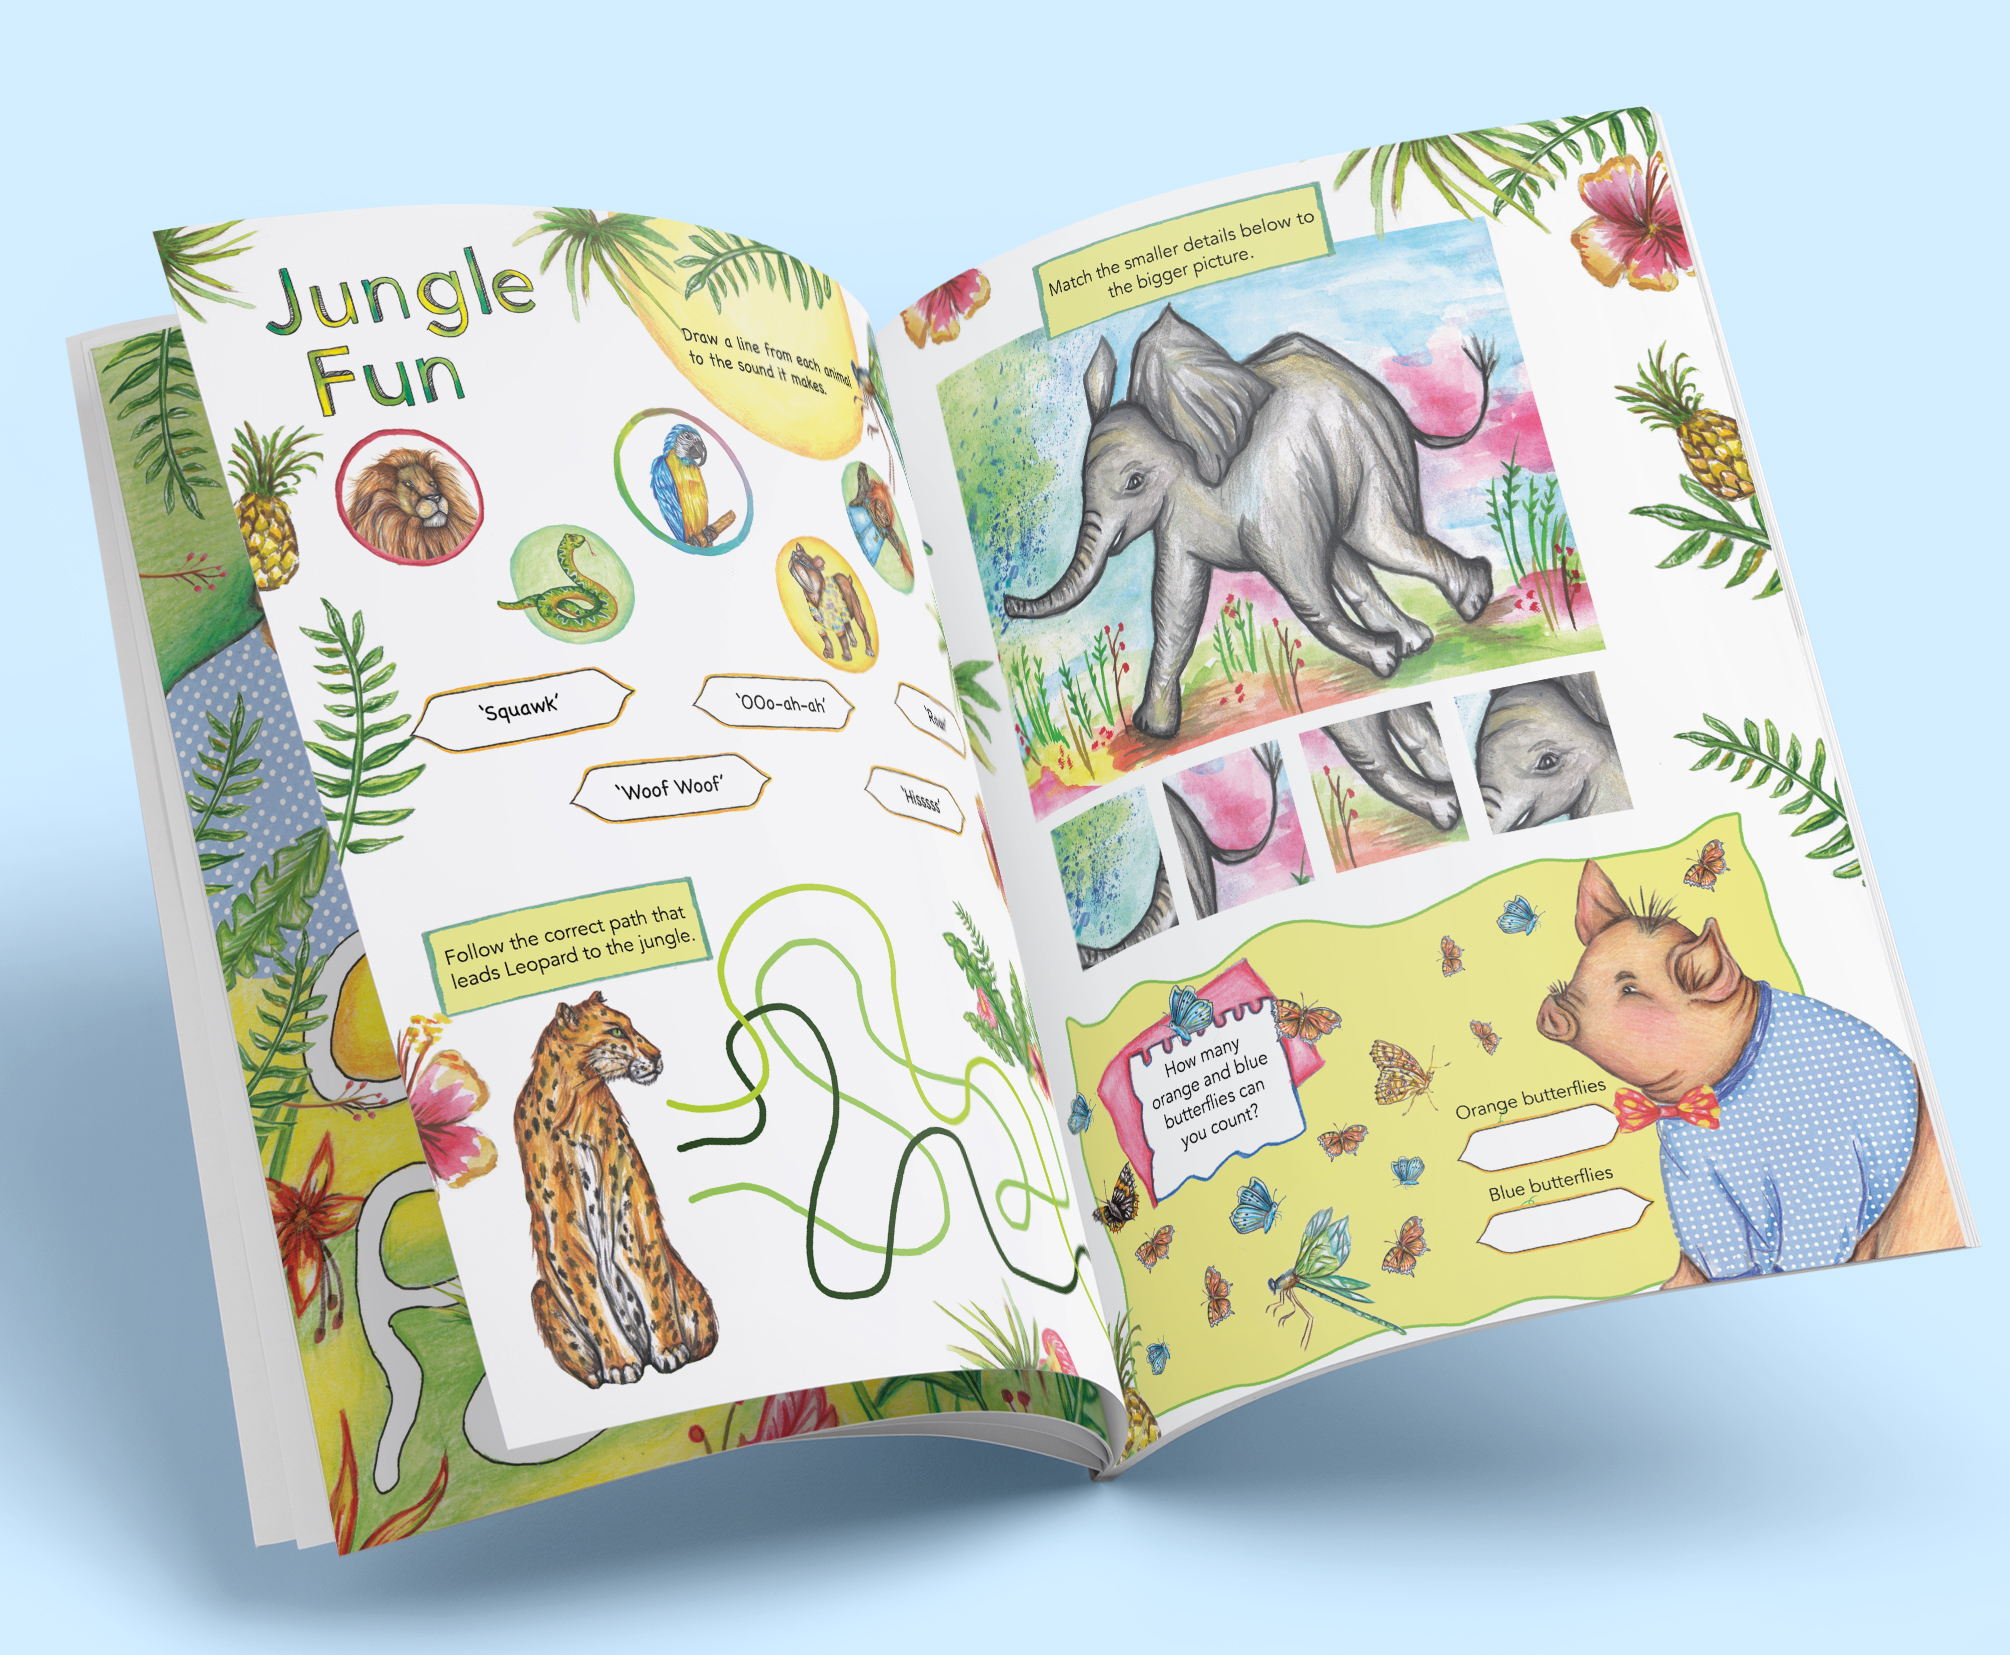 Jungle games page. Children can match the animals to the sound they make and help Pipkin the pig count all the butterflies.